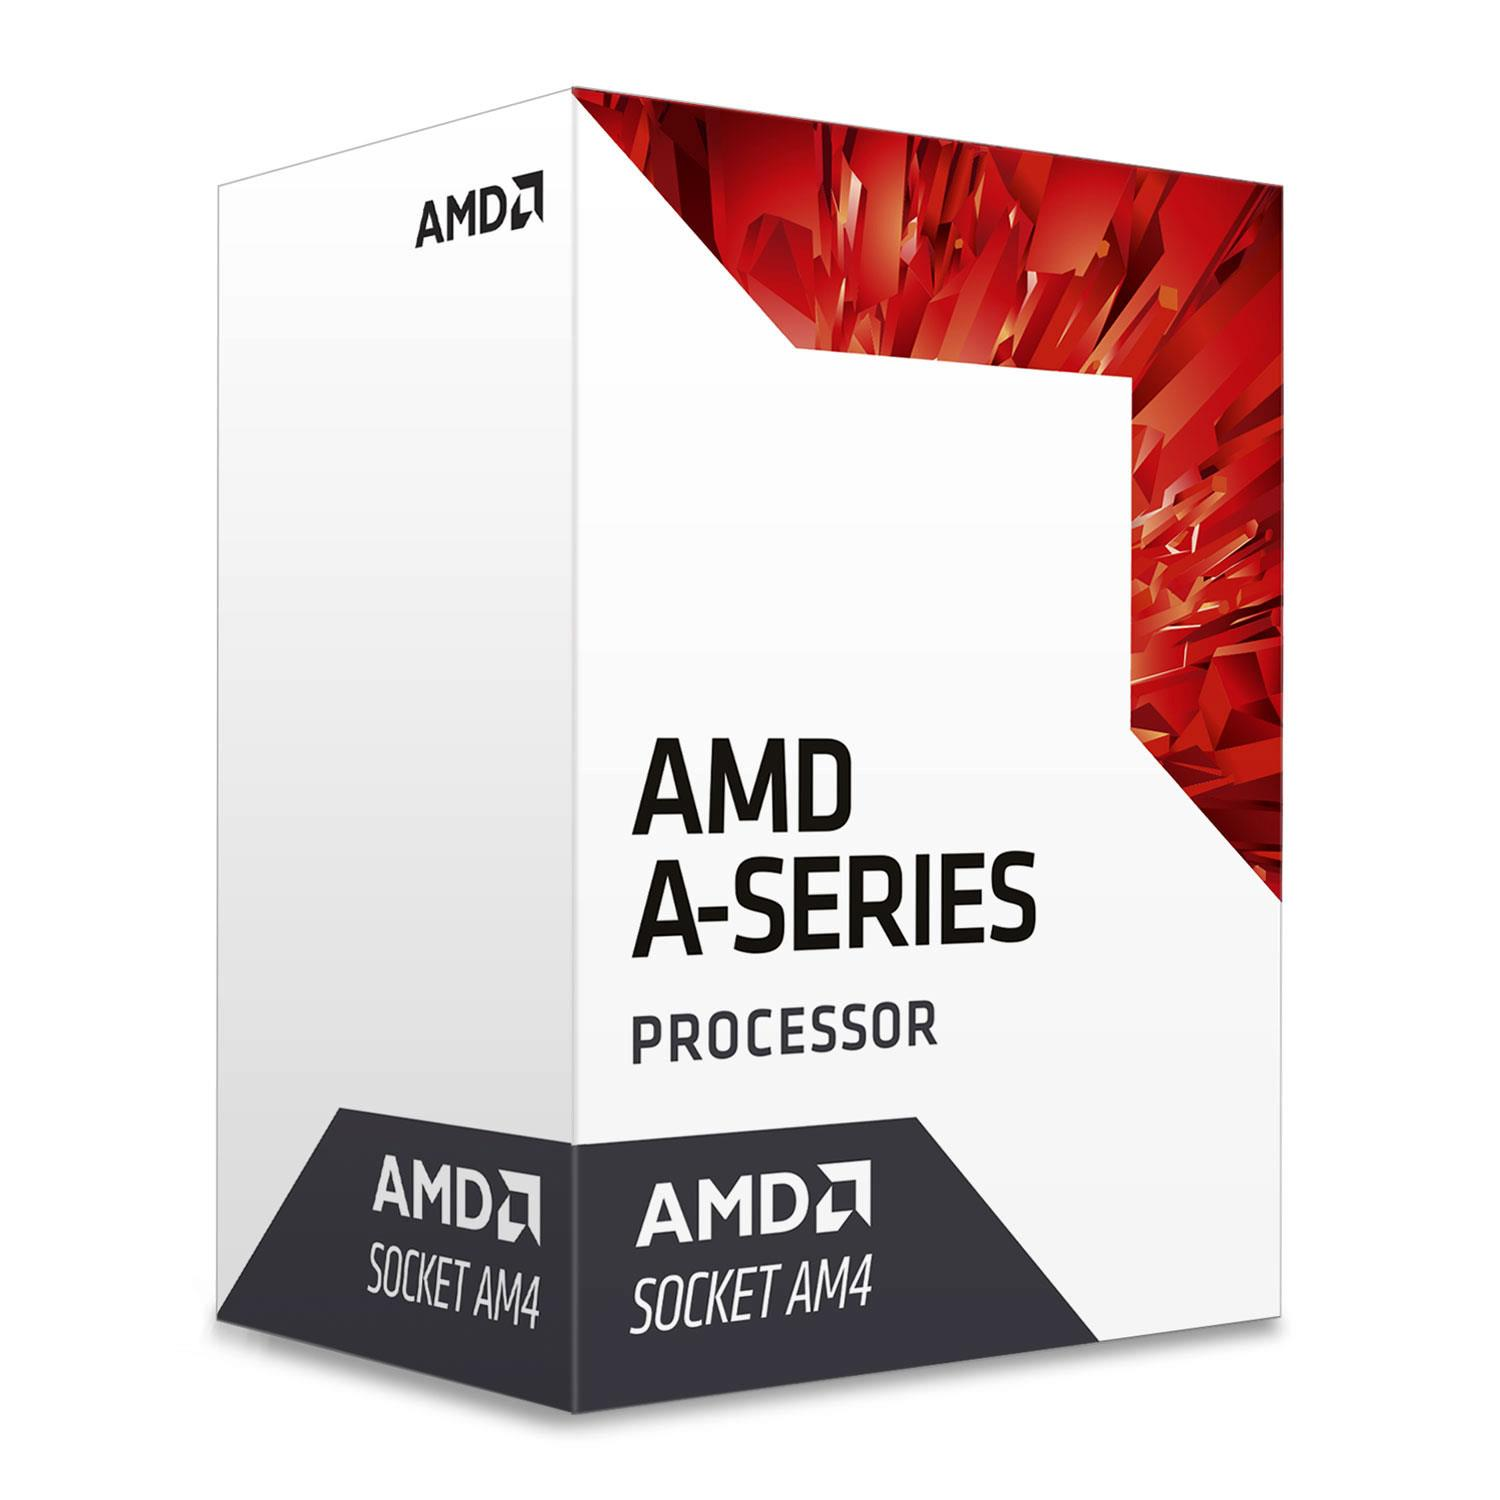 AMD 7th Gen A8 (9600) 3.1GHz Processor with 2MB L2 Cache (Box)